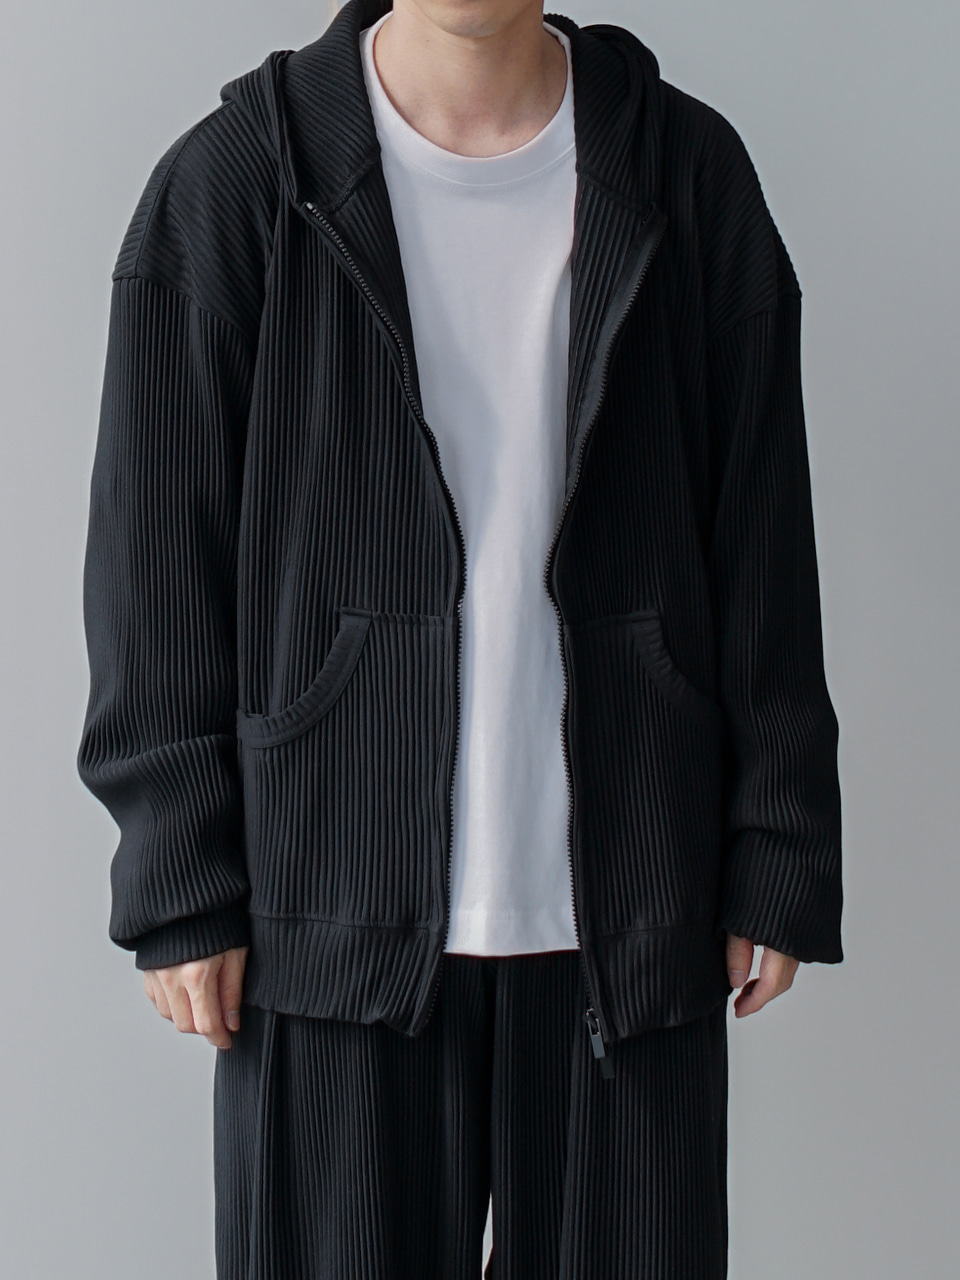 Or Pleats Hooded Zip Jacket (4color)